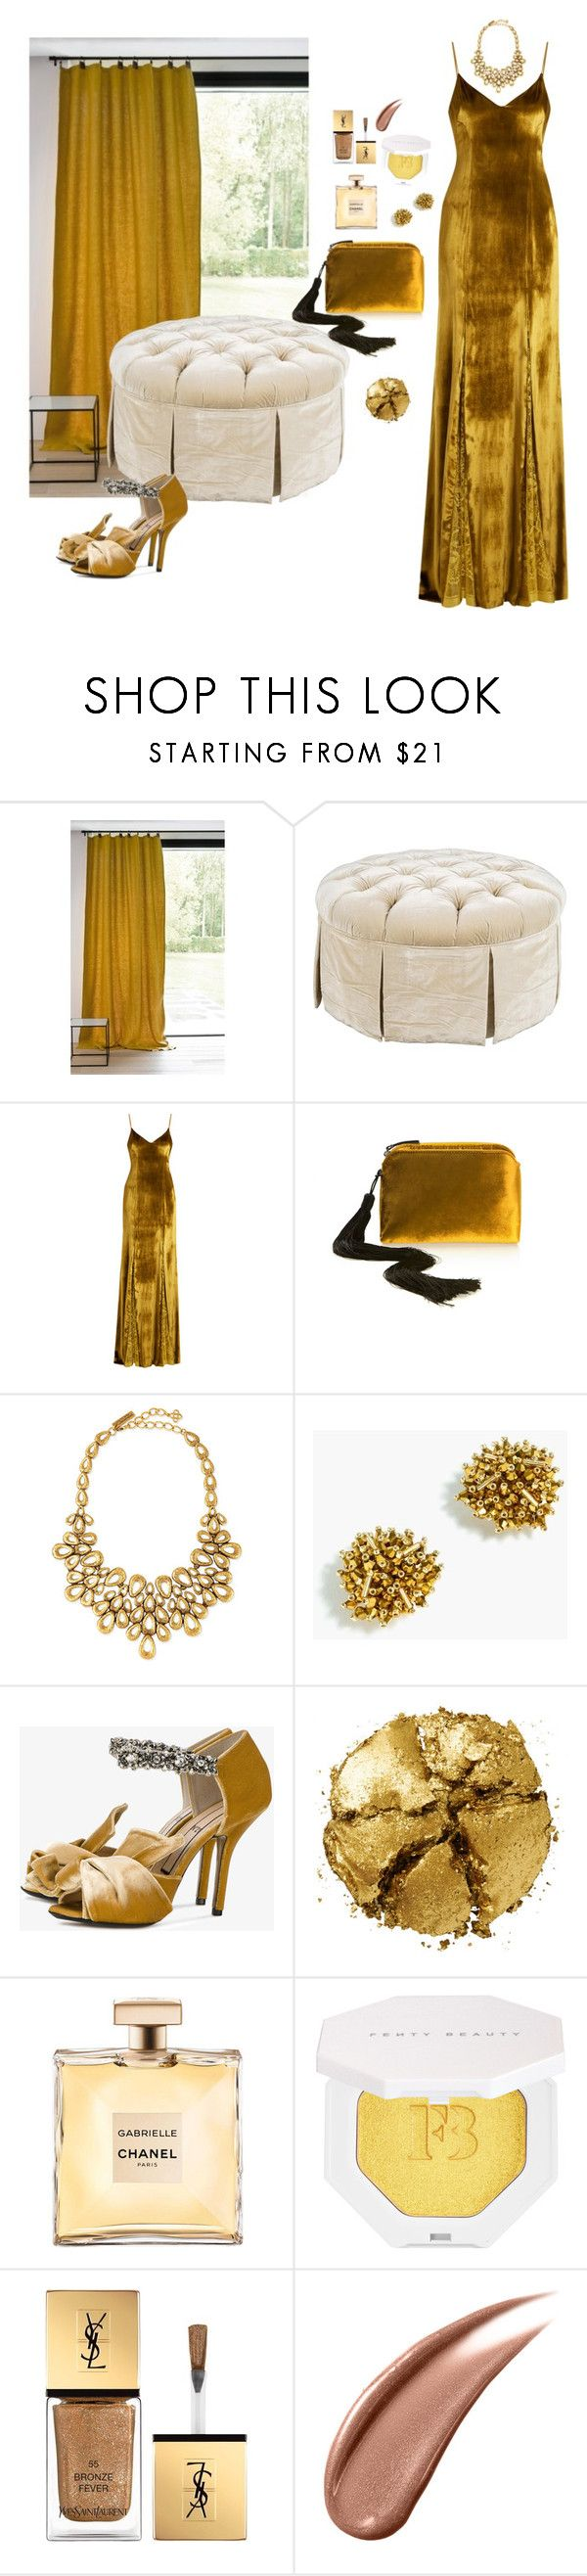 """Radiance"" by chelsofly on Polyvore featuring Galvan, The Row, Oscar de la Renta, J.Crew, N°21, Pat McGrath, Puma, Yves Saint Laurent, gold and metallic"